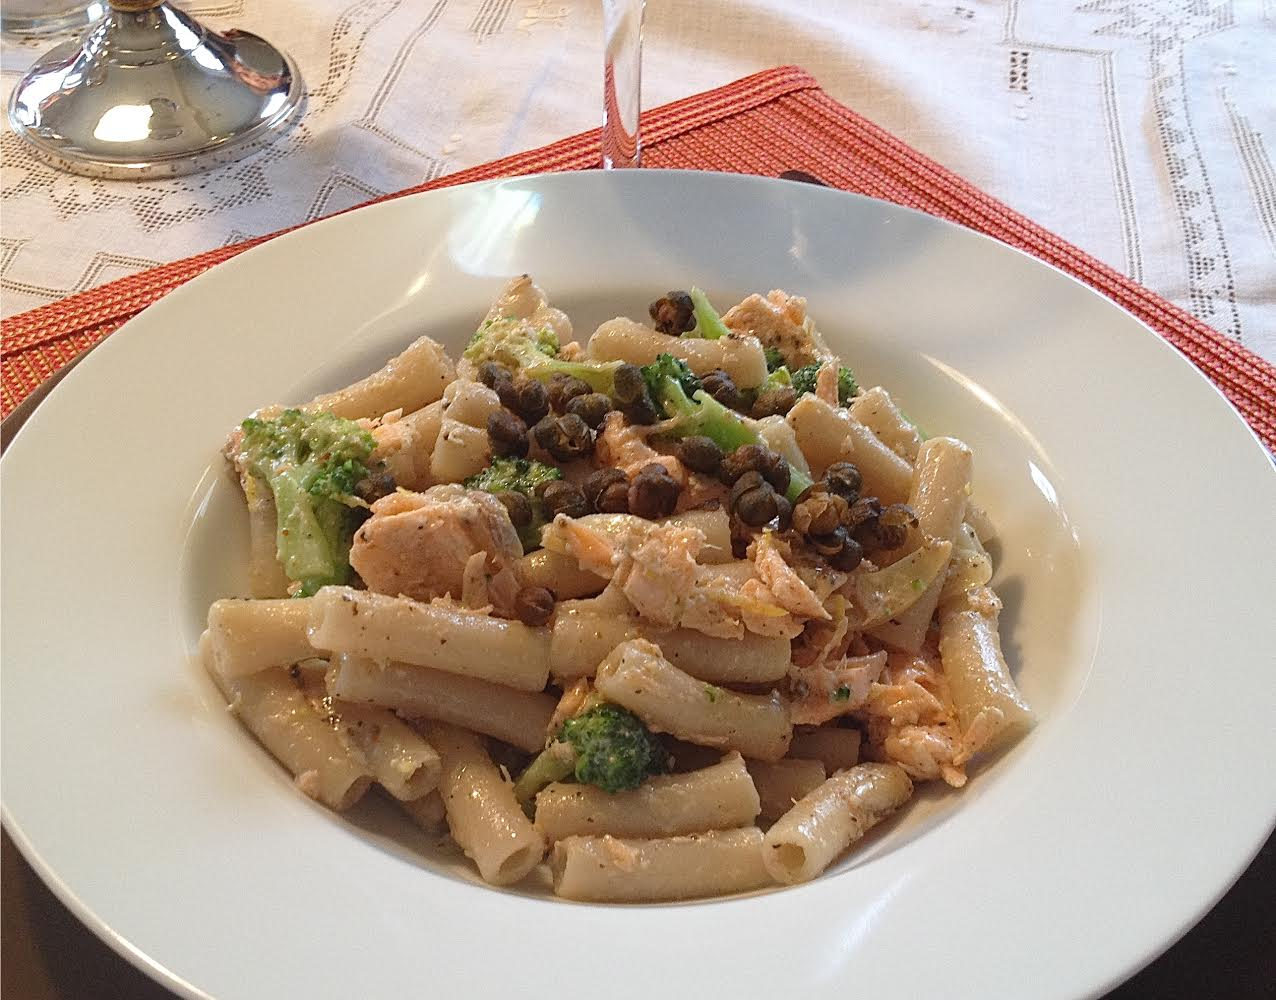 Pasta With Salmon And Broccoli Topped With Fried Capers Single Serving